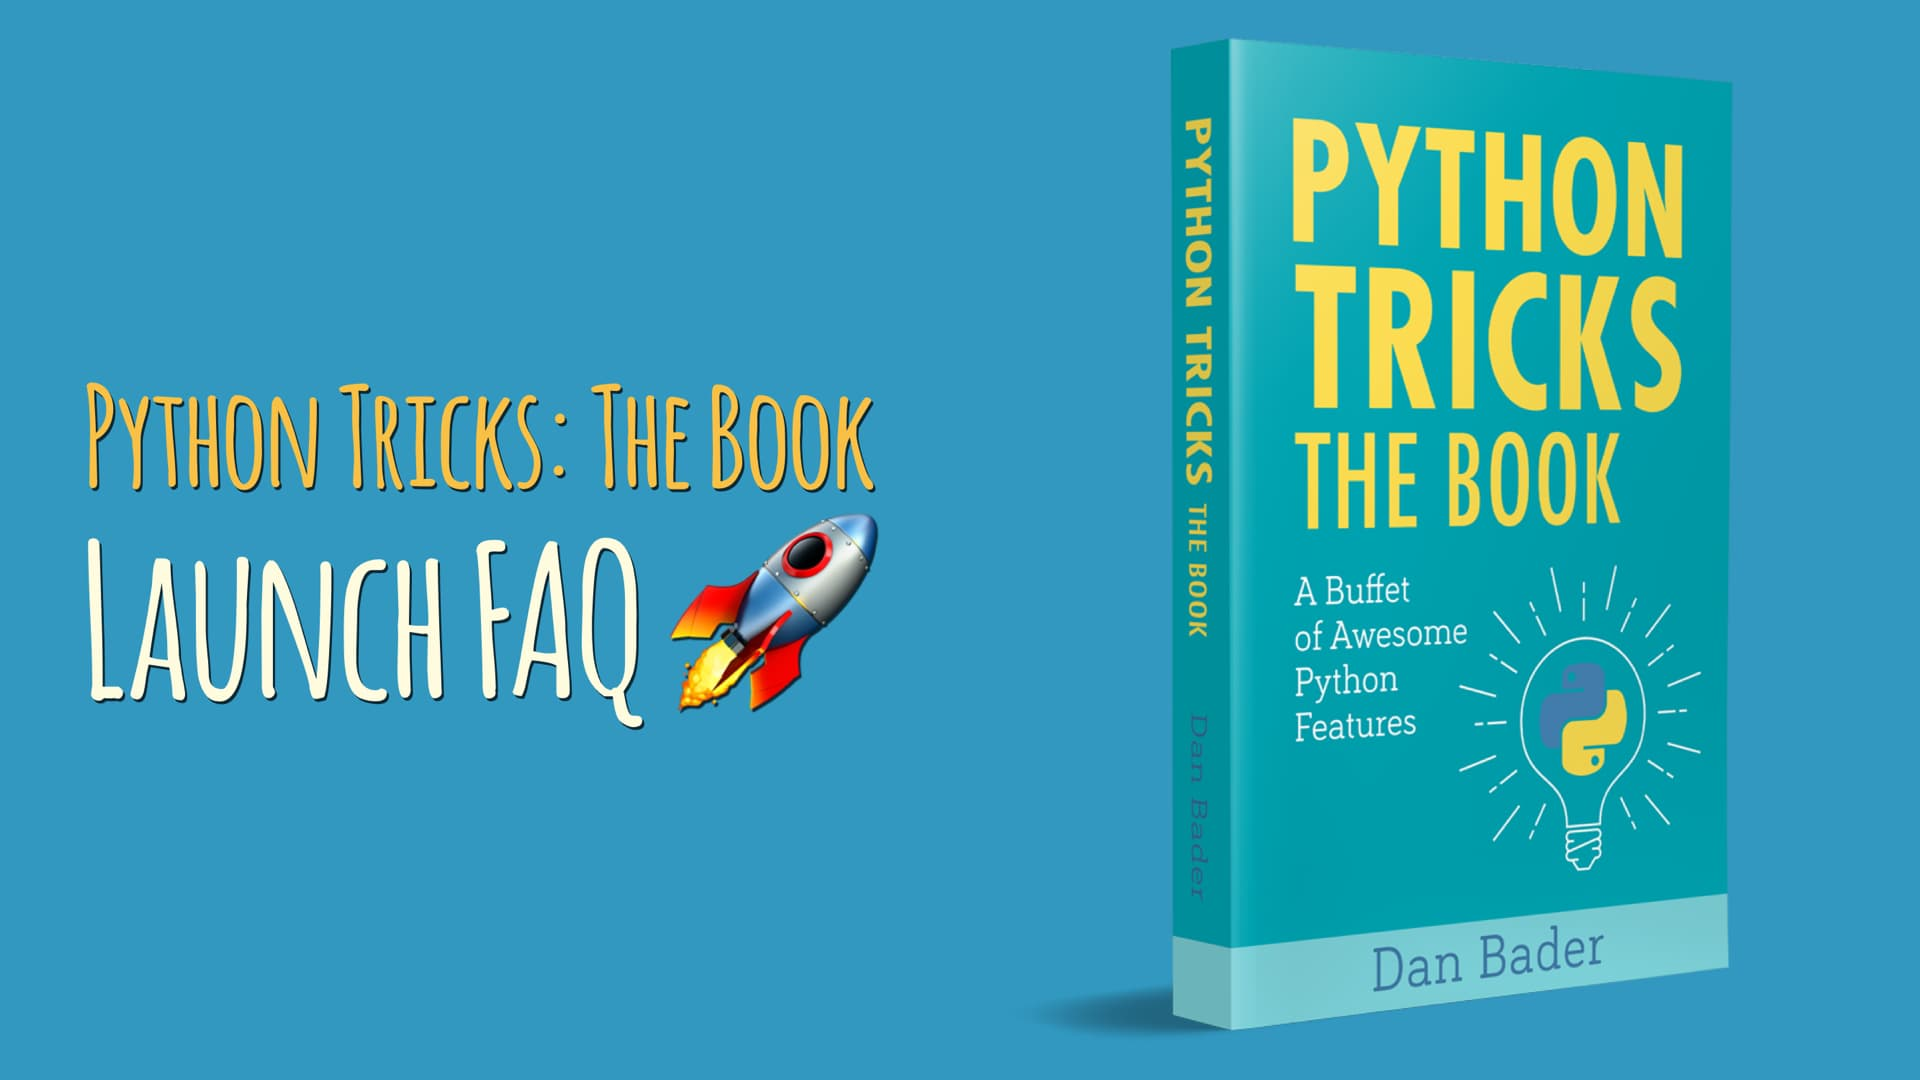 Python Tricks: The Book Launch FAQ